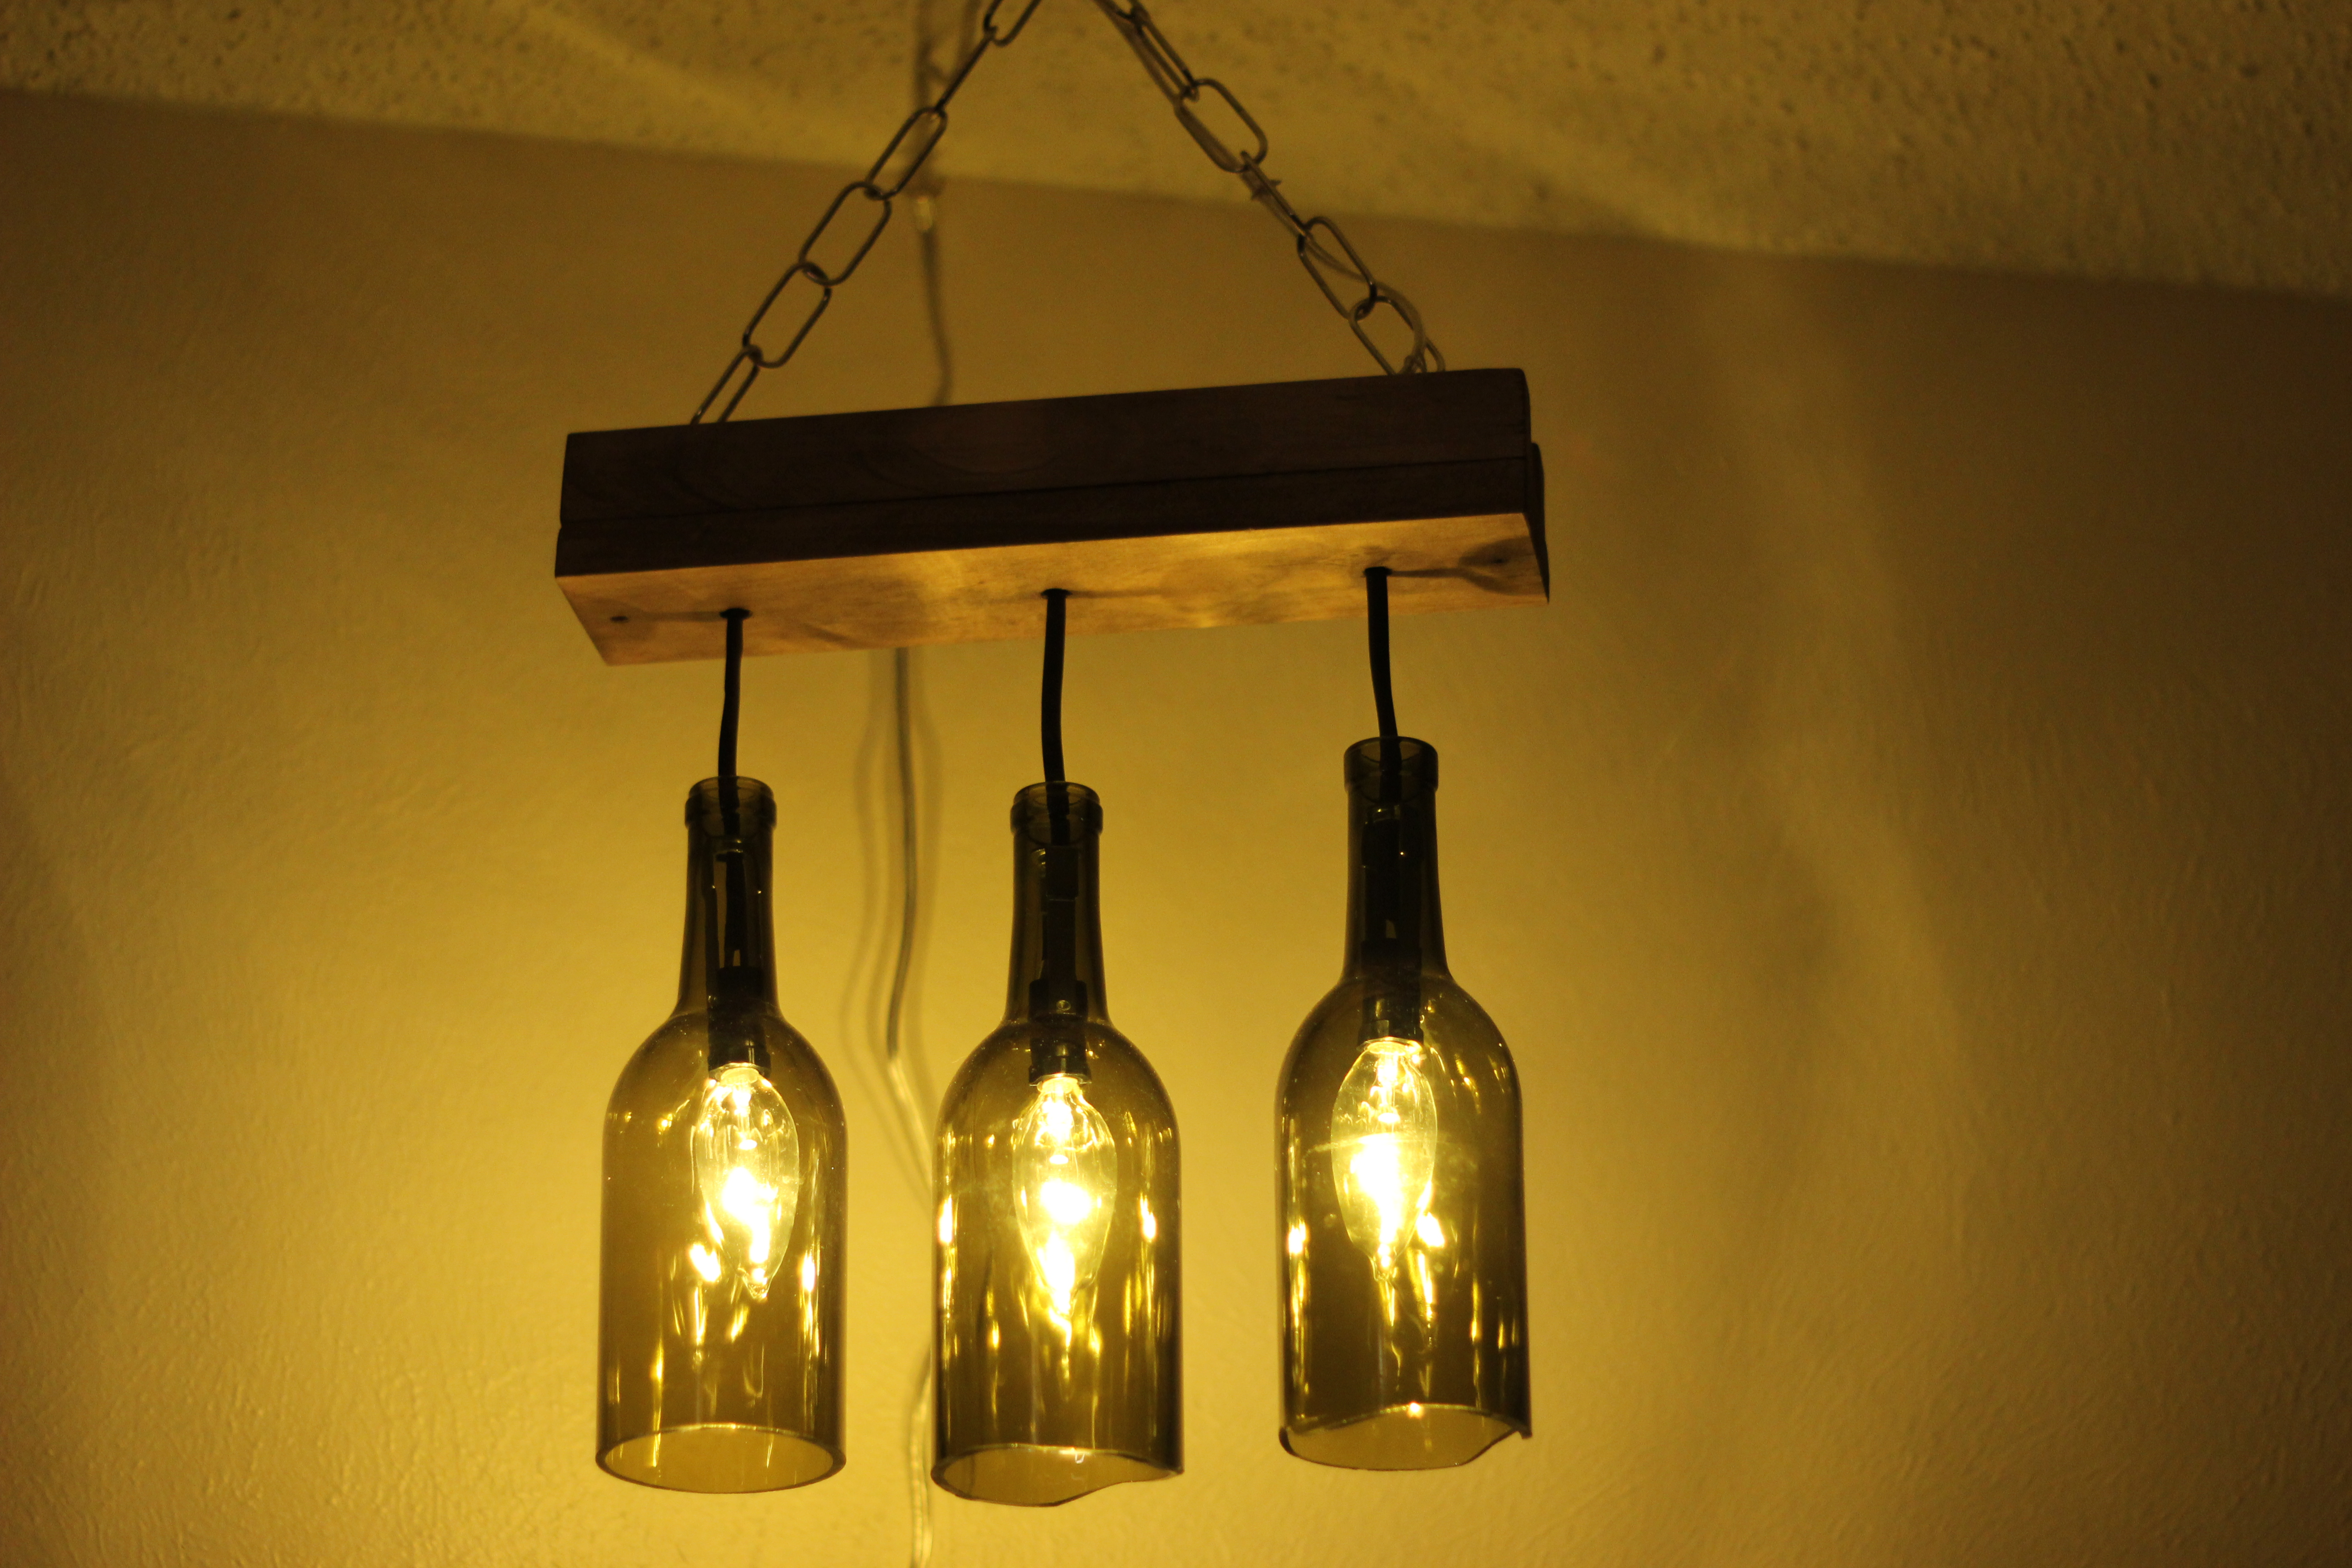 How to choose the glass bottle lamps warisan lighting for Glass bottles with lights in them